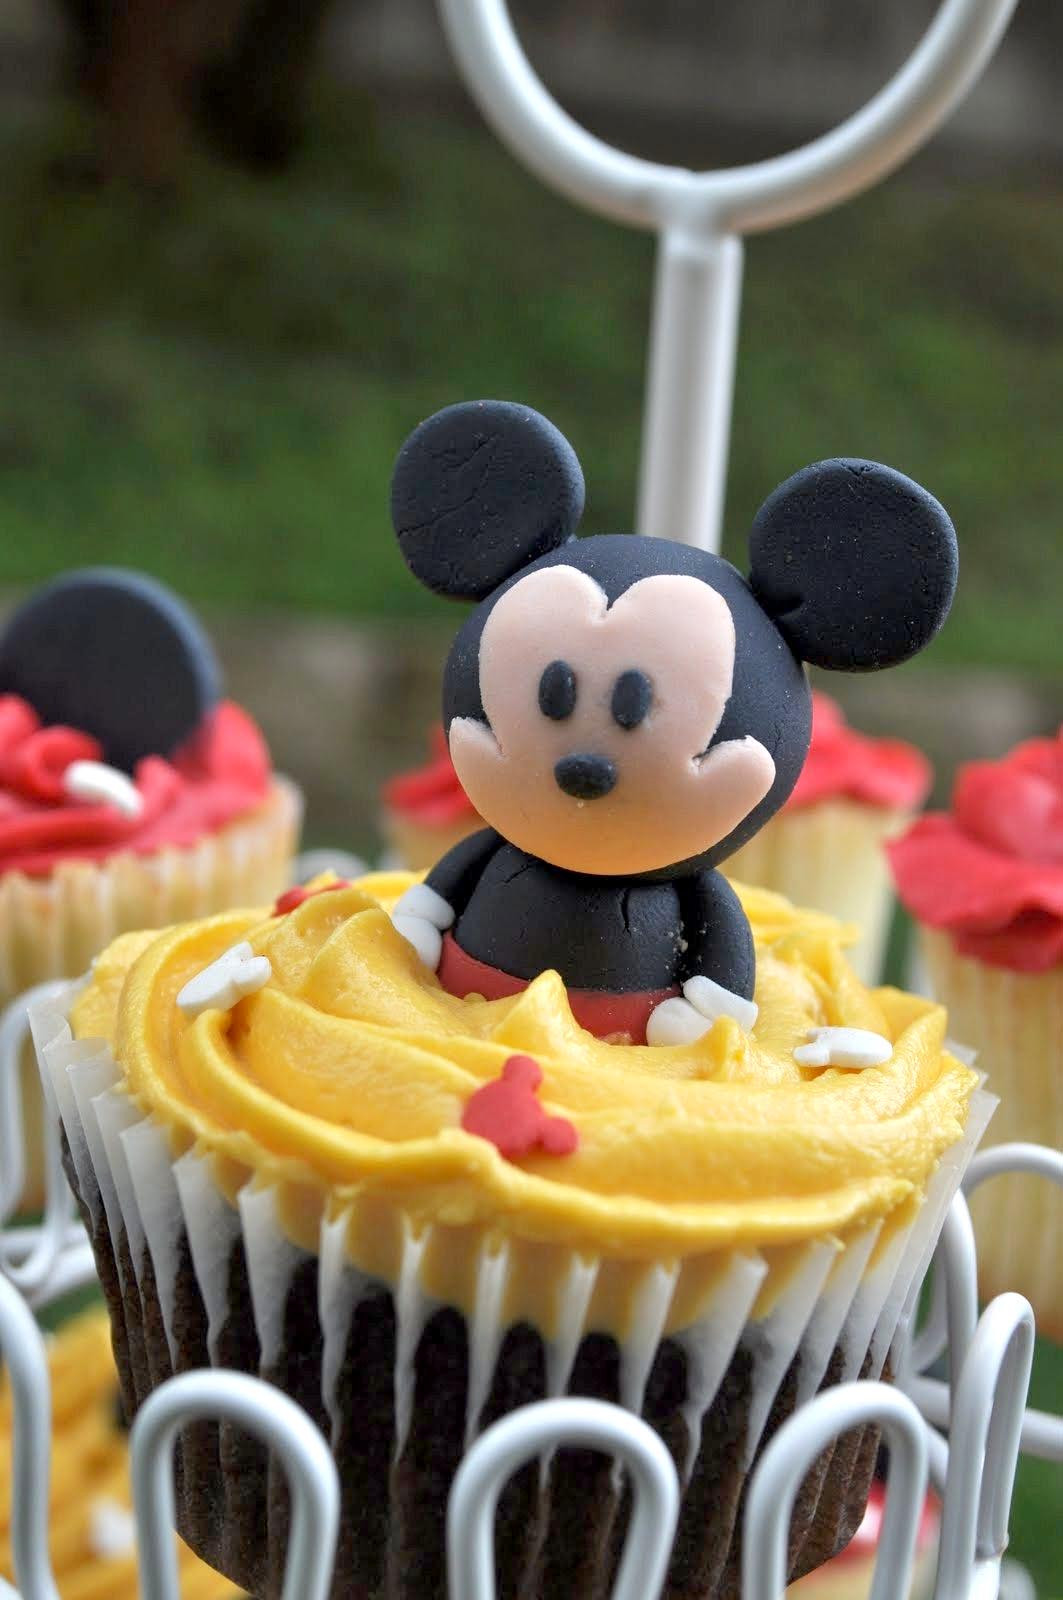 Mickey Mouse Cupcakes  Whisk Upon A Star Behind The Cupcakes Hey Mickey